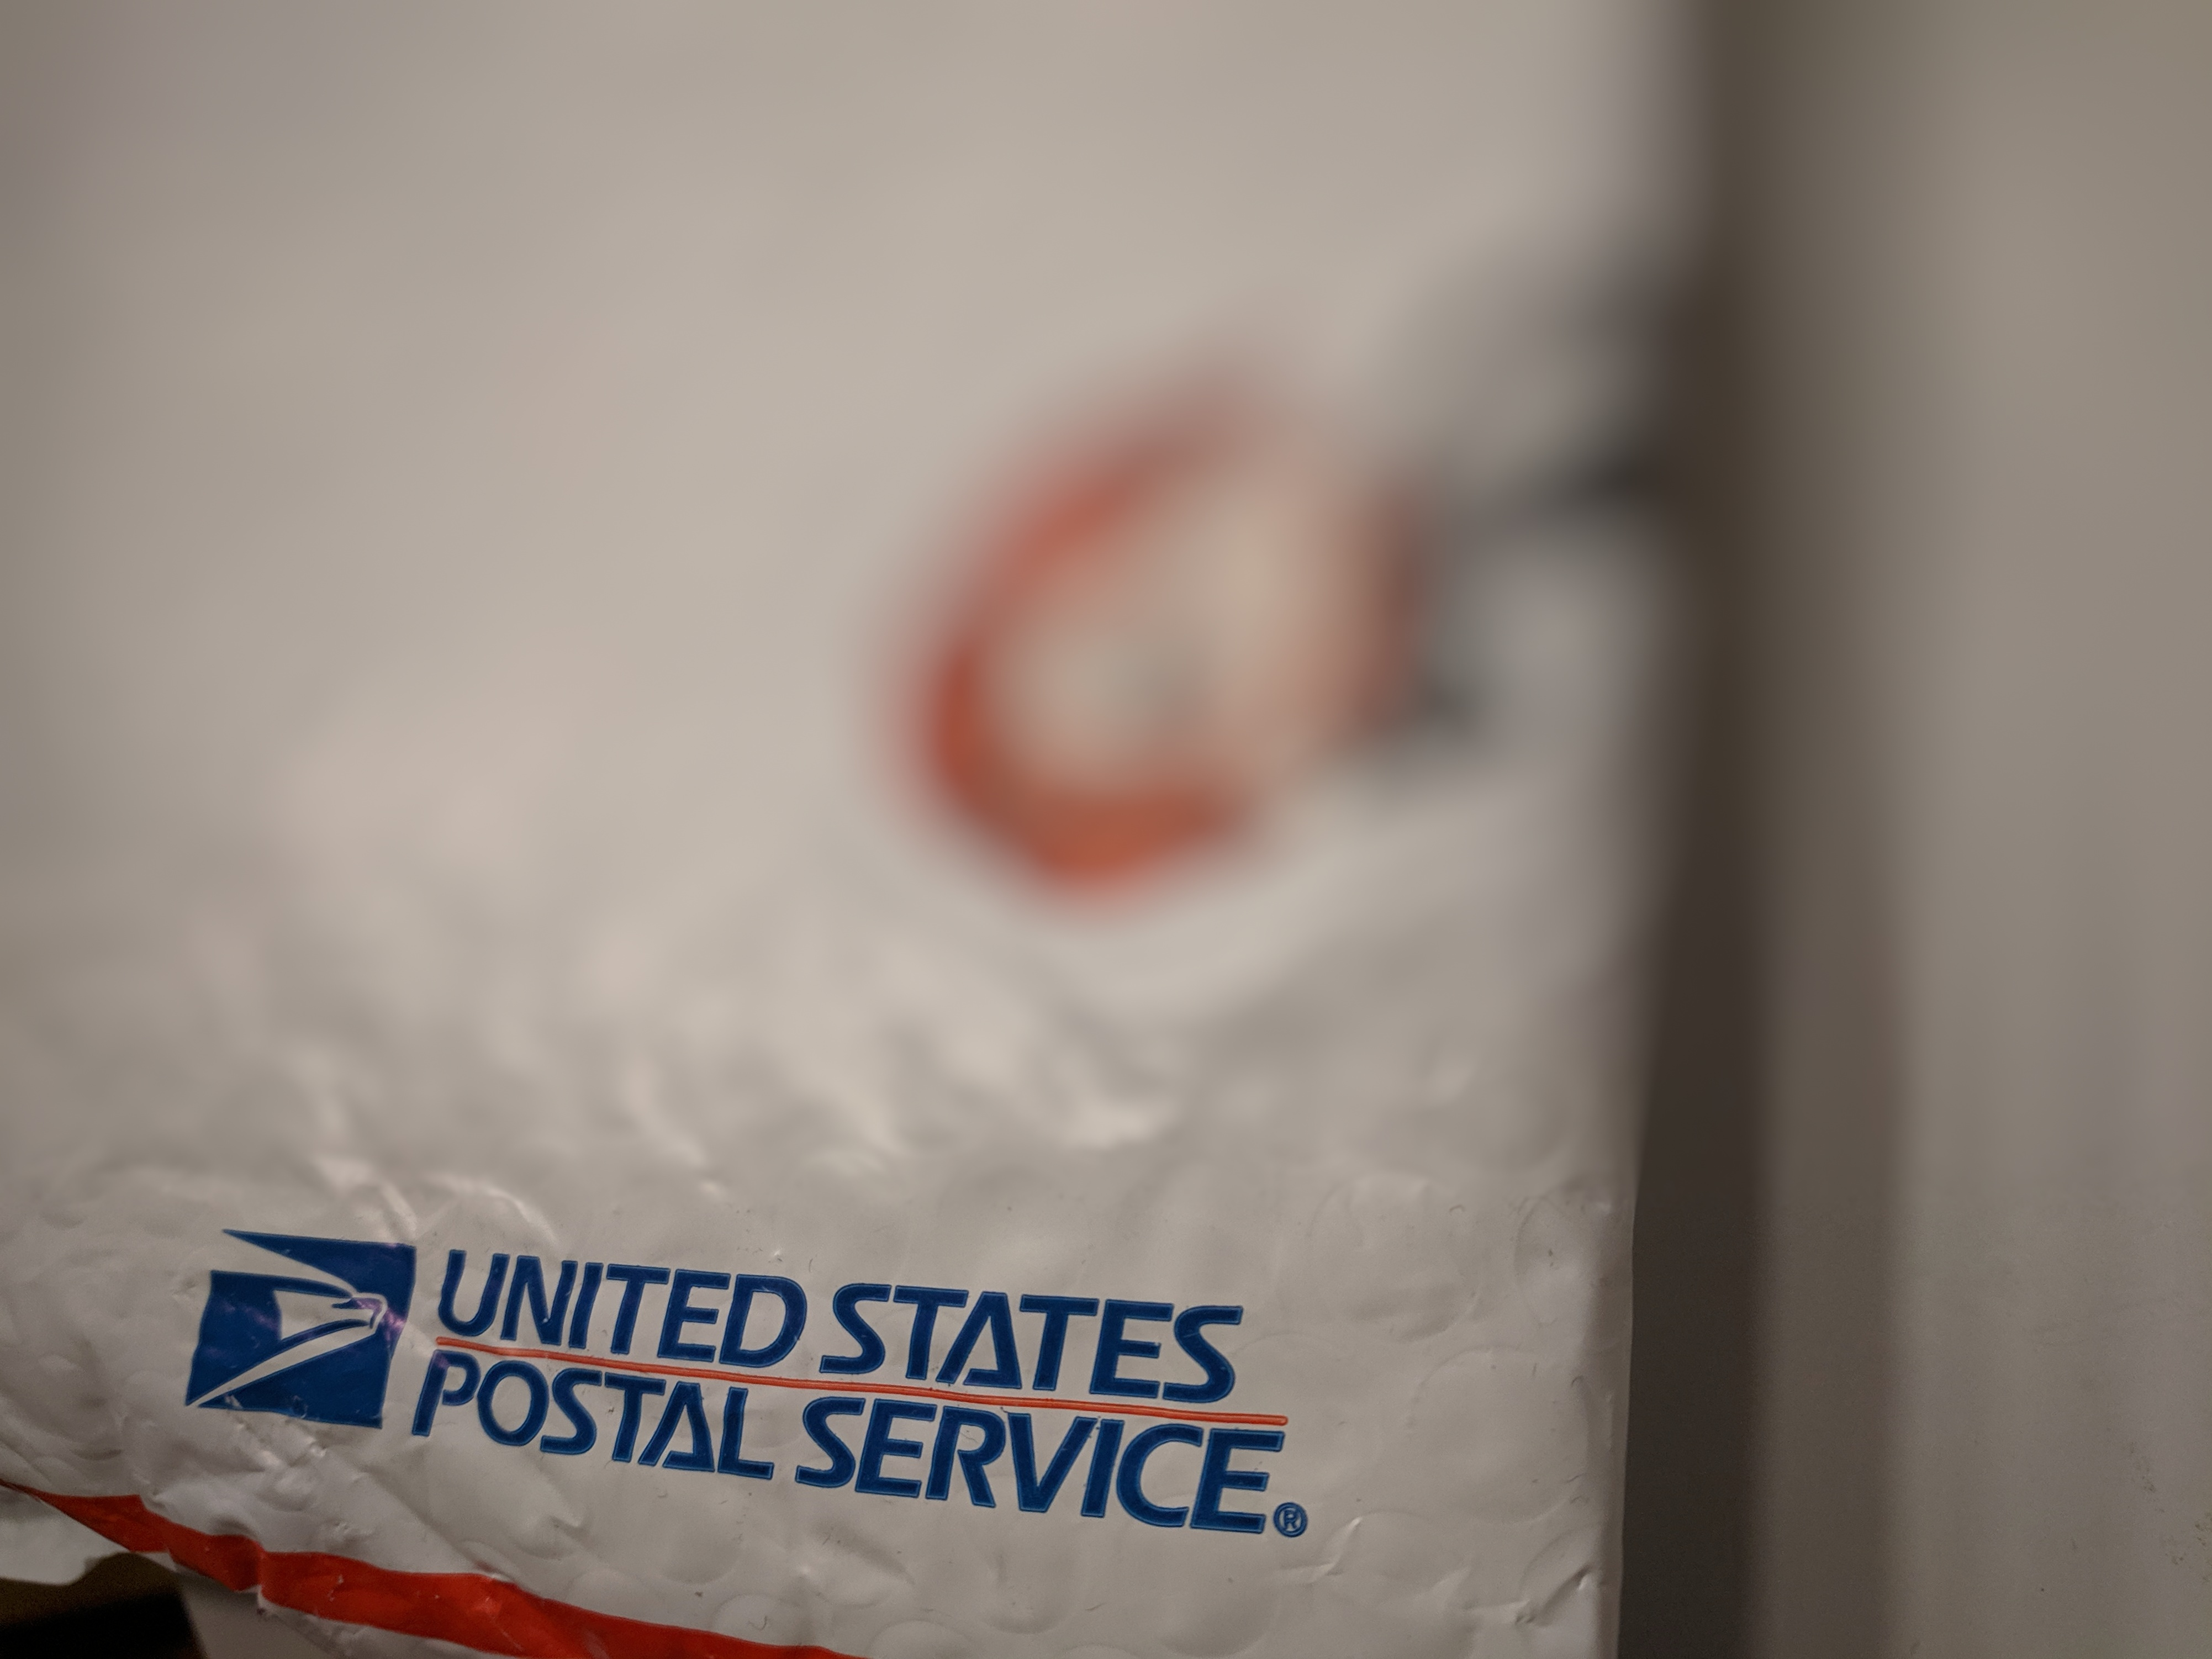 Blurry image of a USPS package